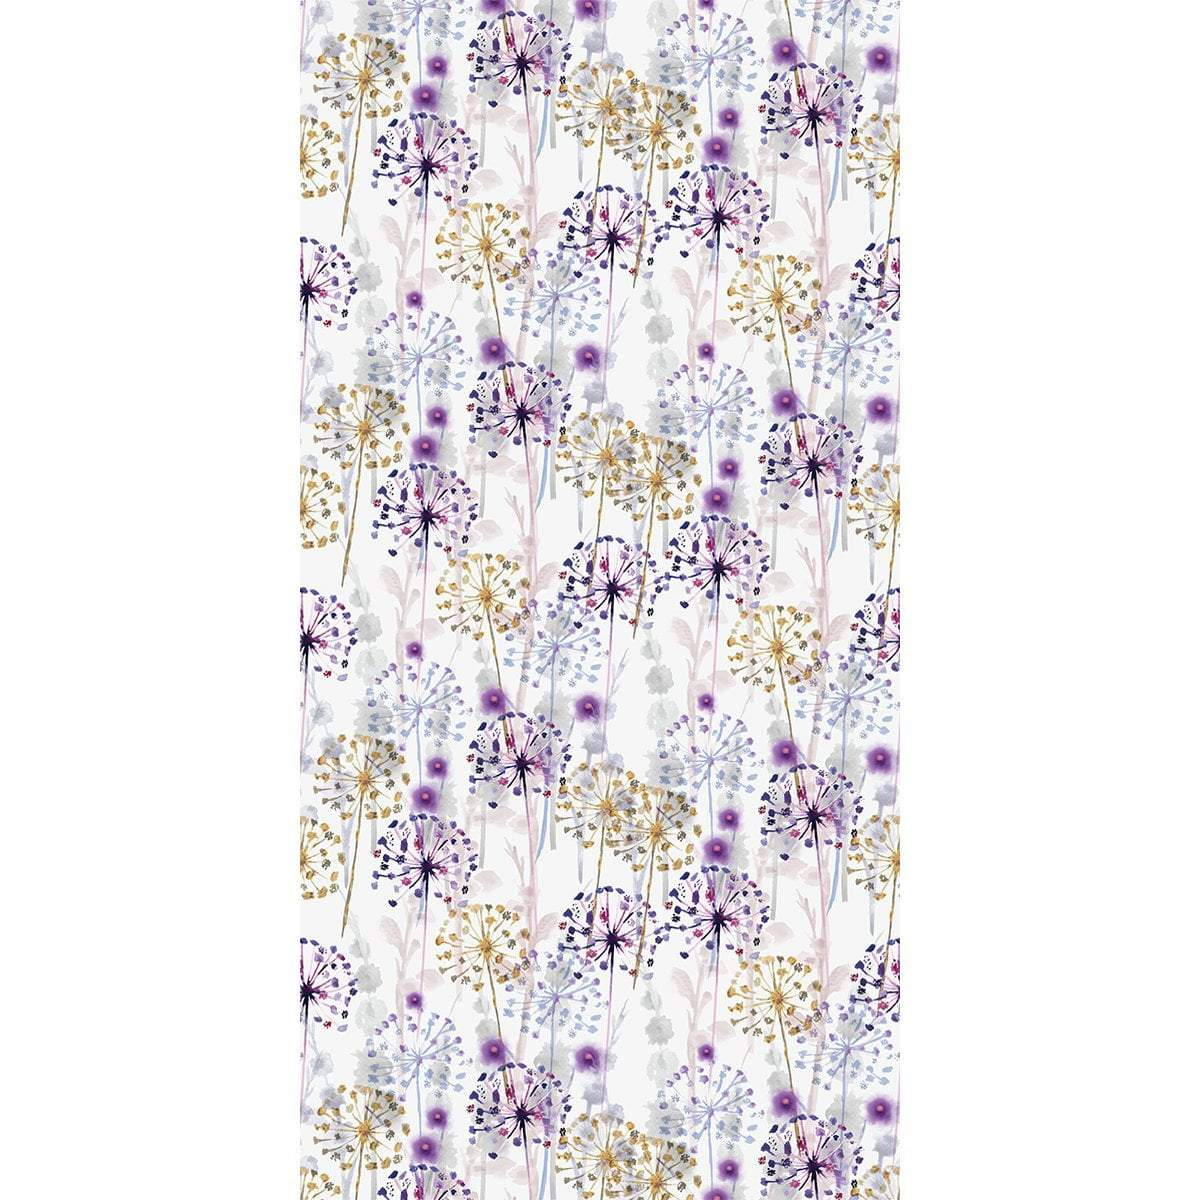 Wall Acoustics Botanical  Pansies Muffle Pattern - Botanical Botanical  Pansies